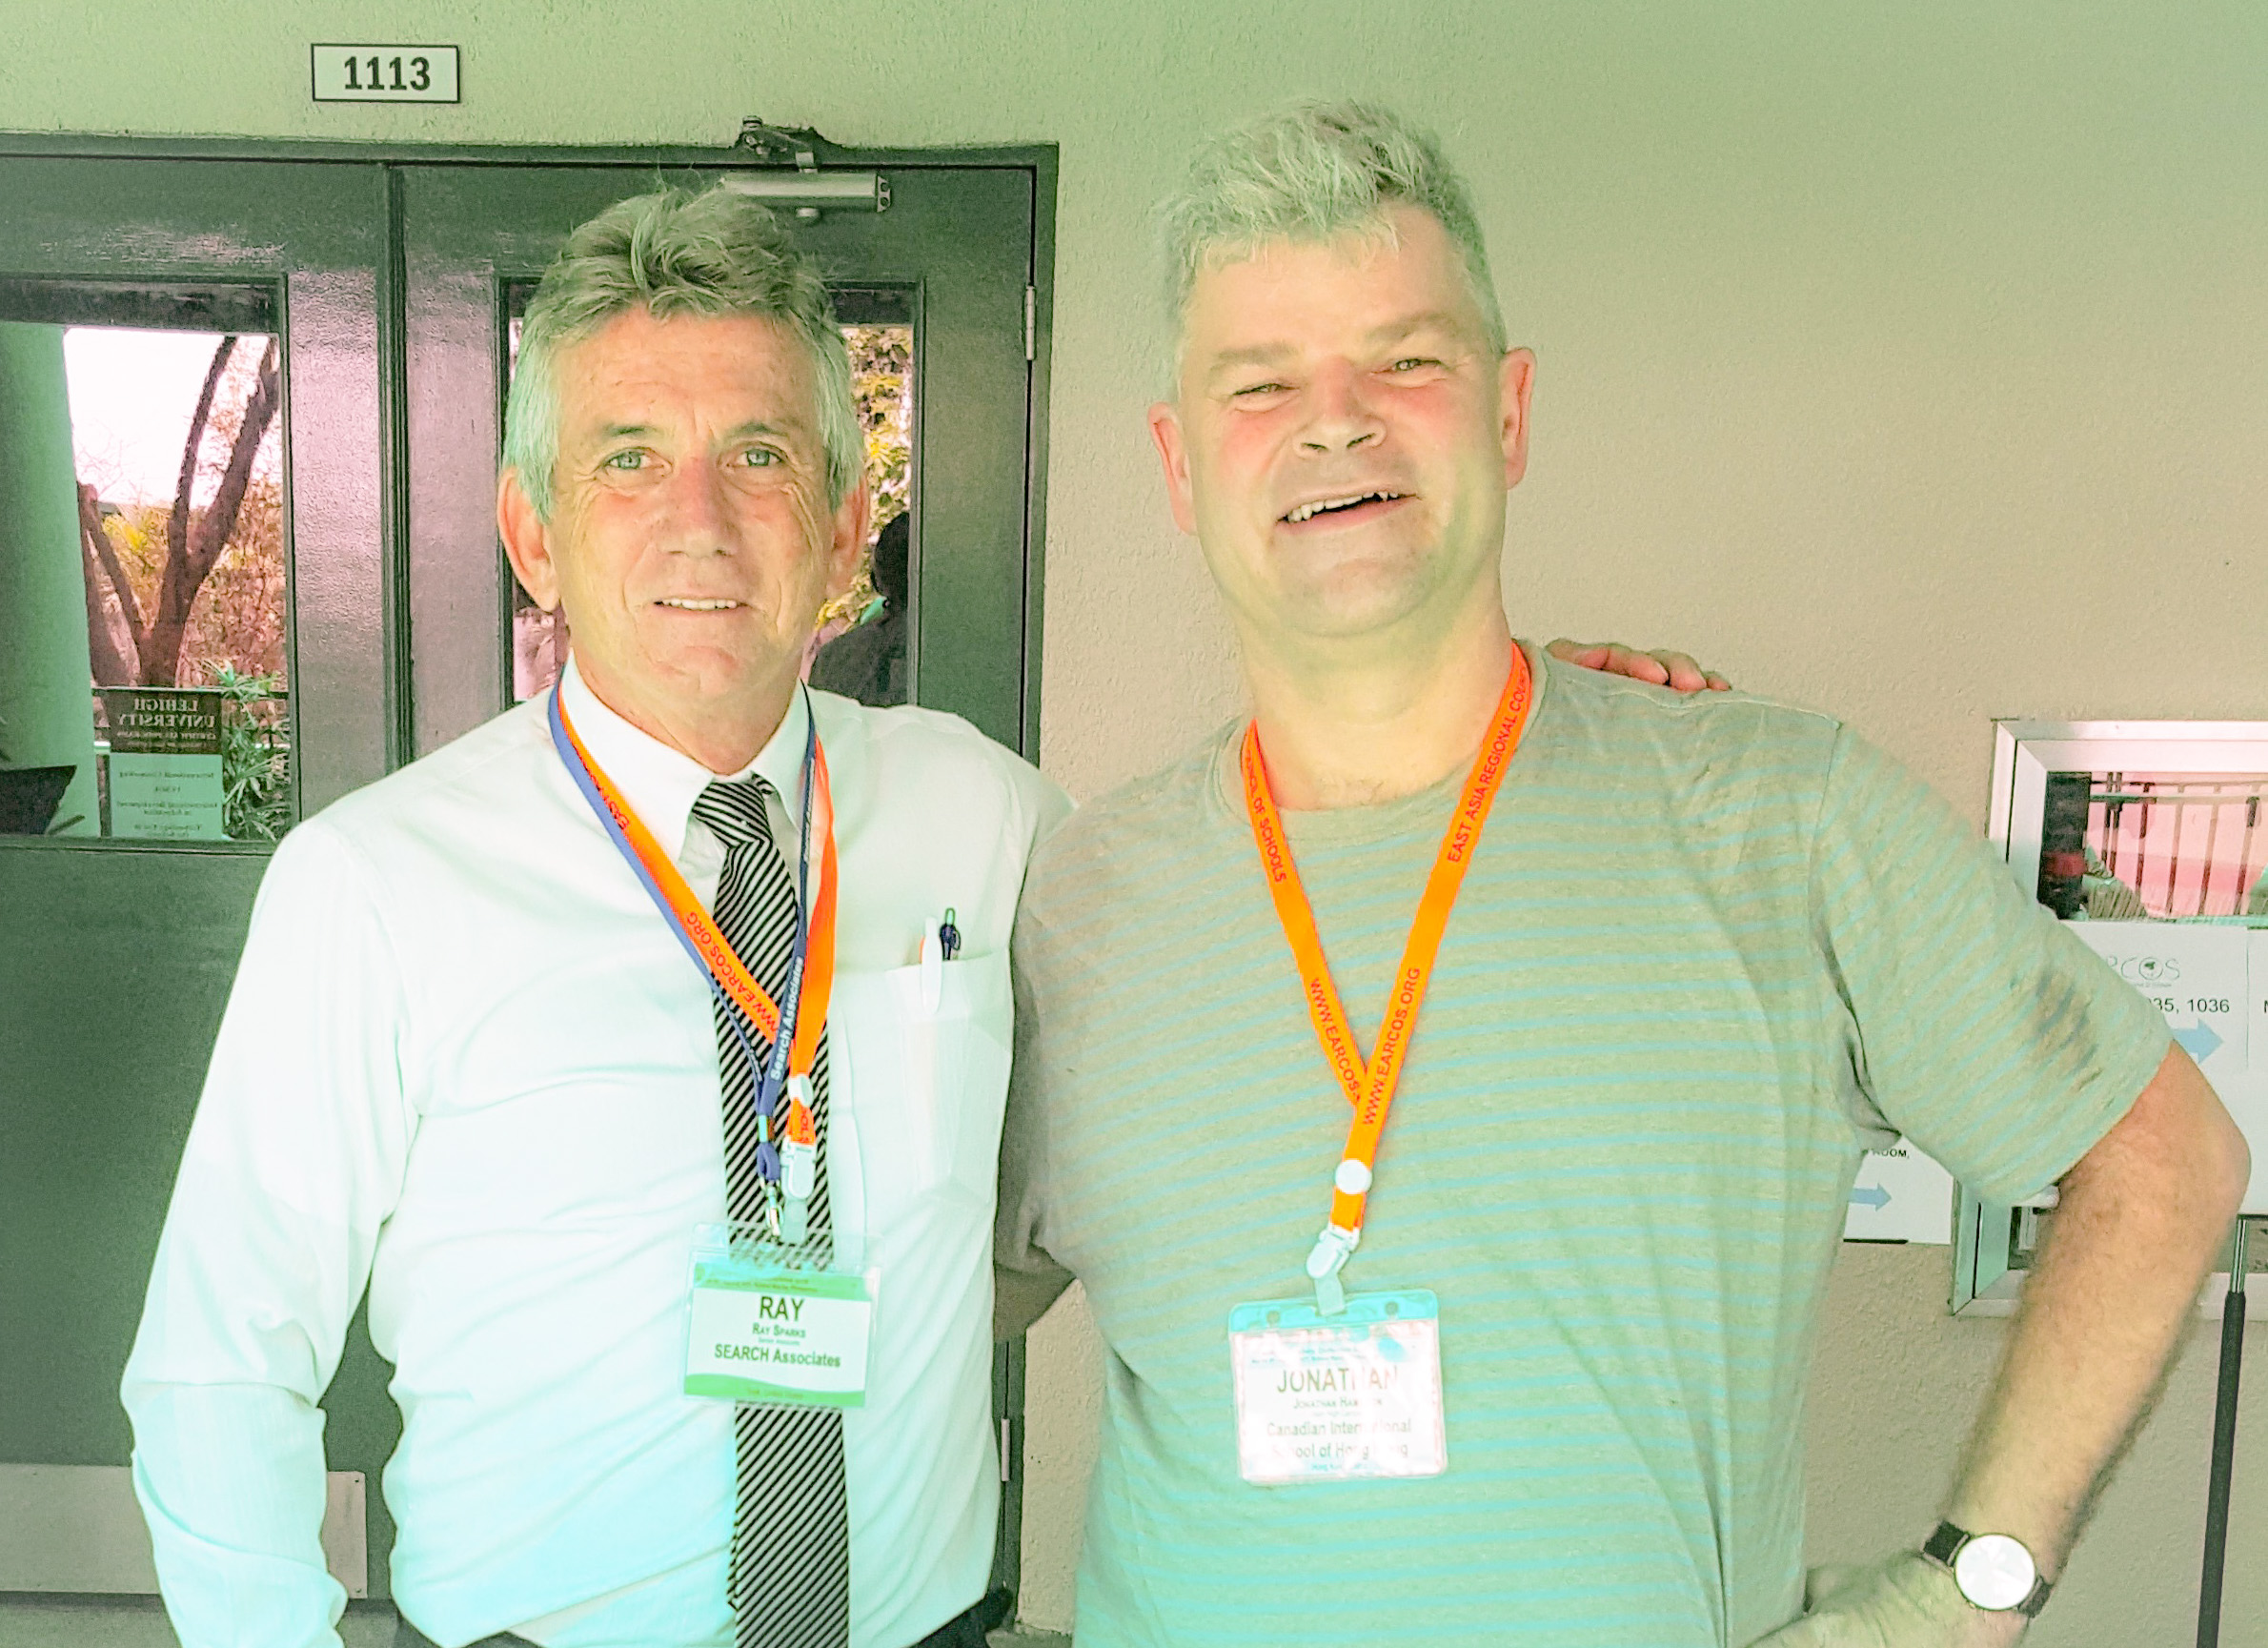 From left: Ray Sparks with former candidate Jonathan Hamilton from the Canadian International School Hong Kong